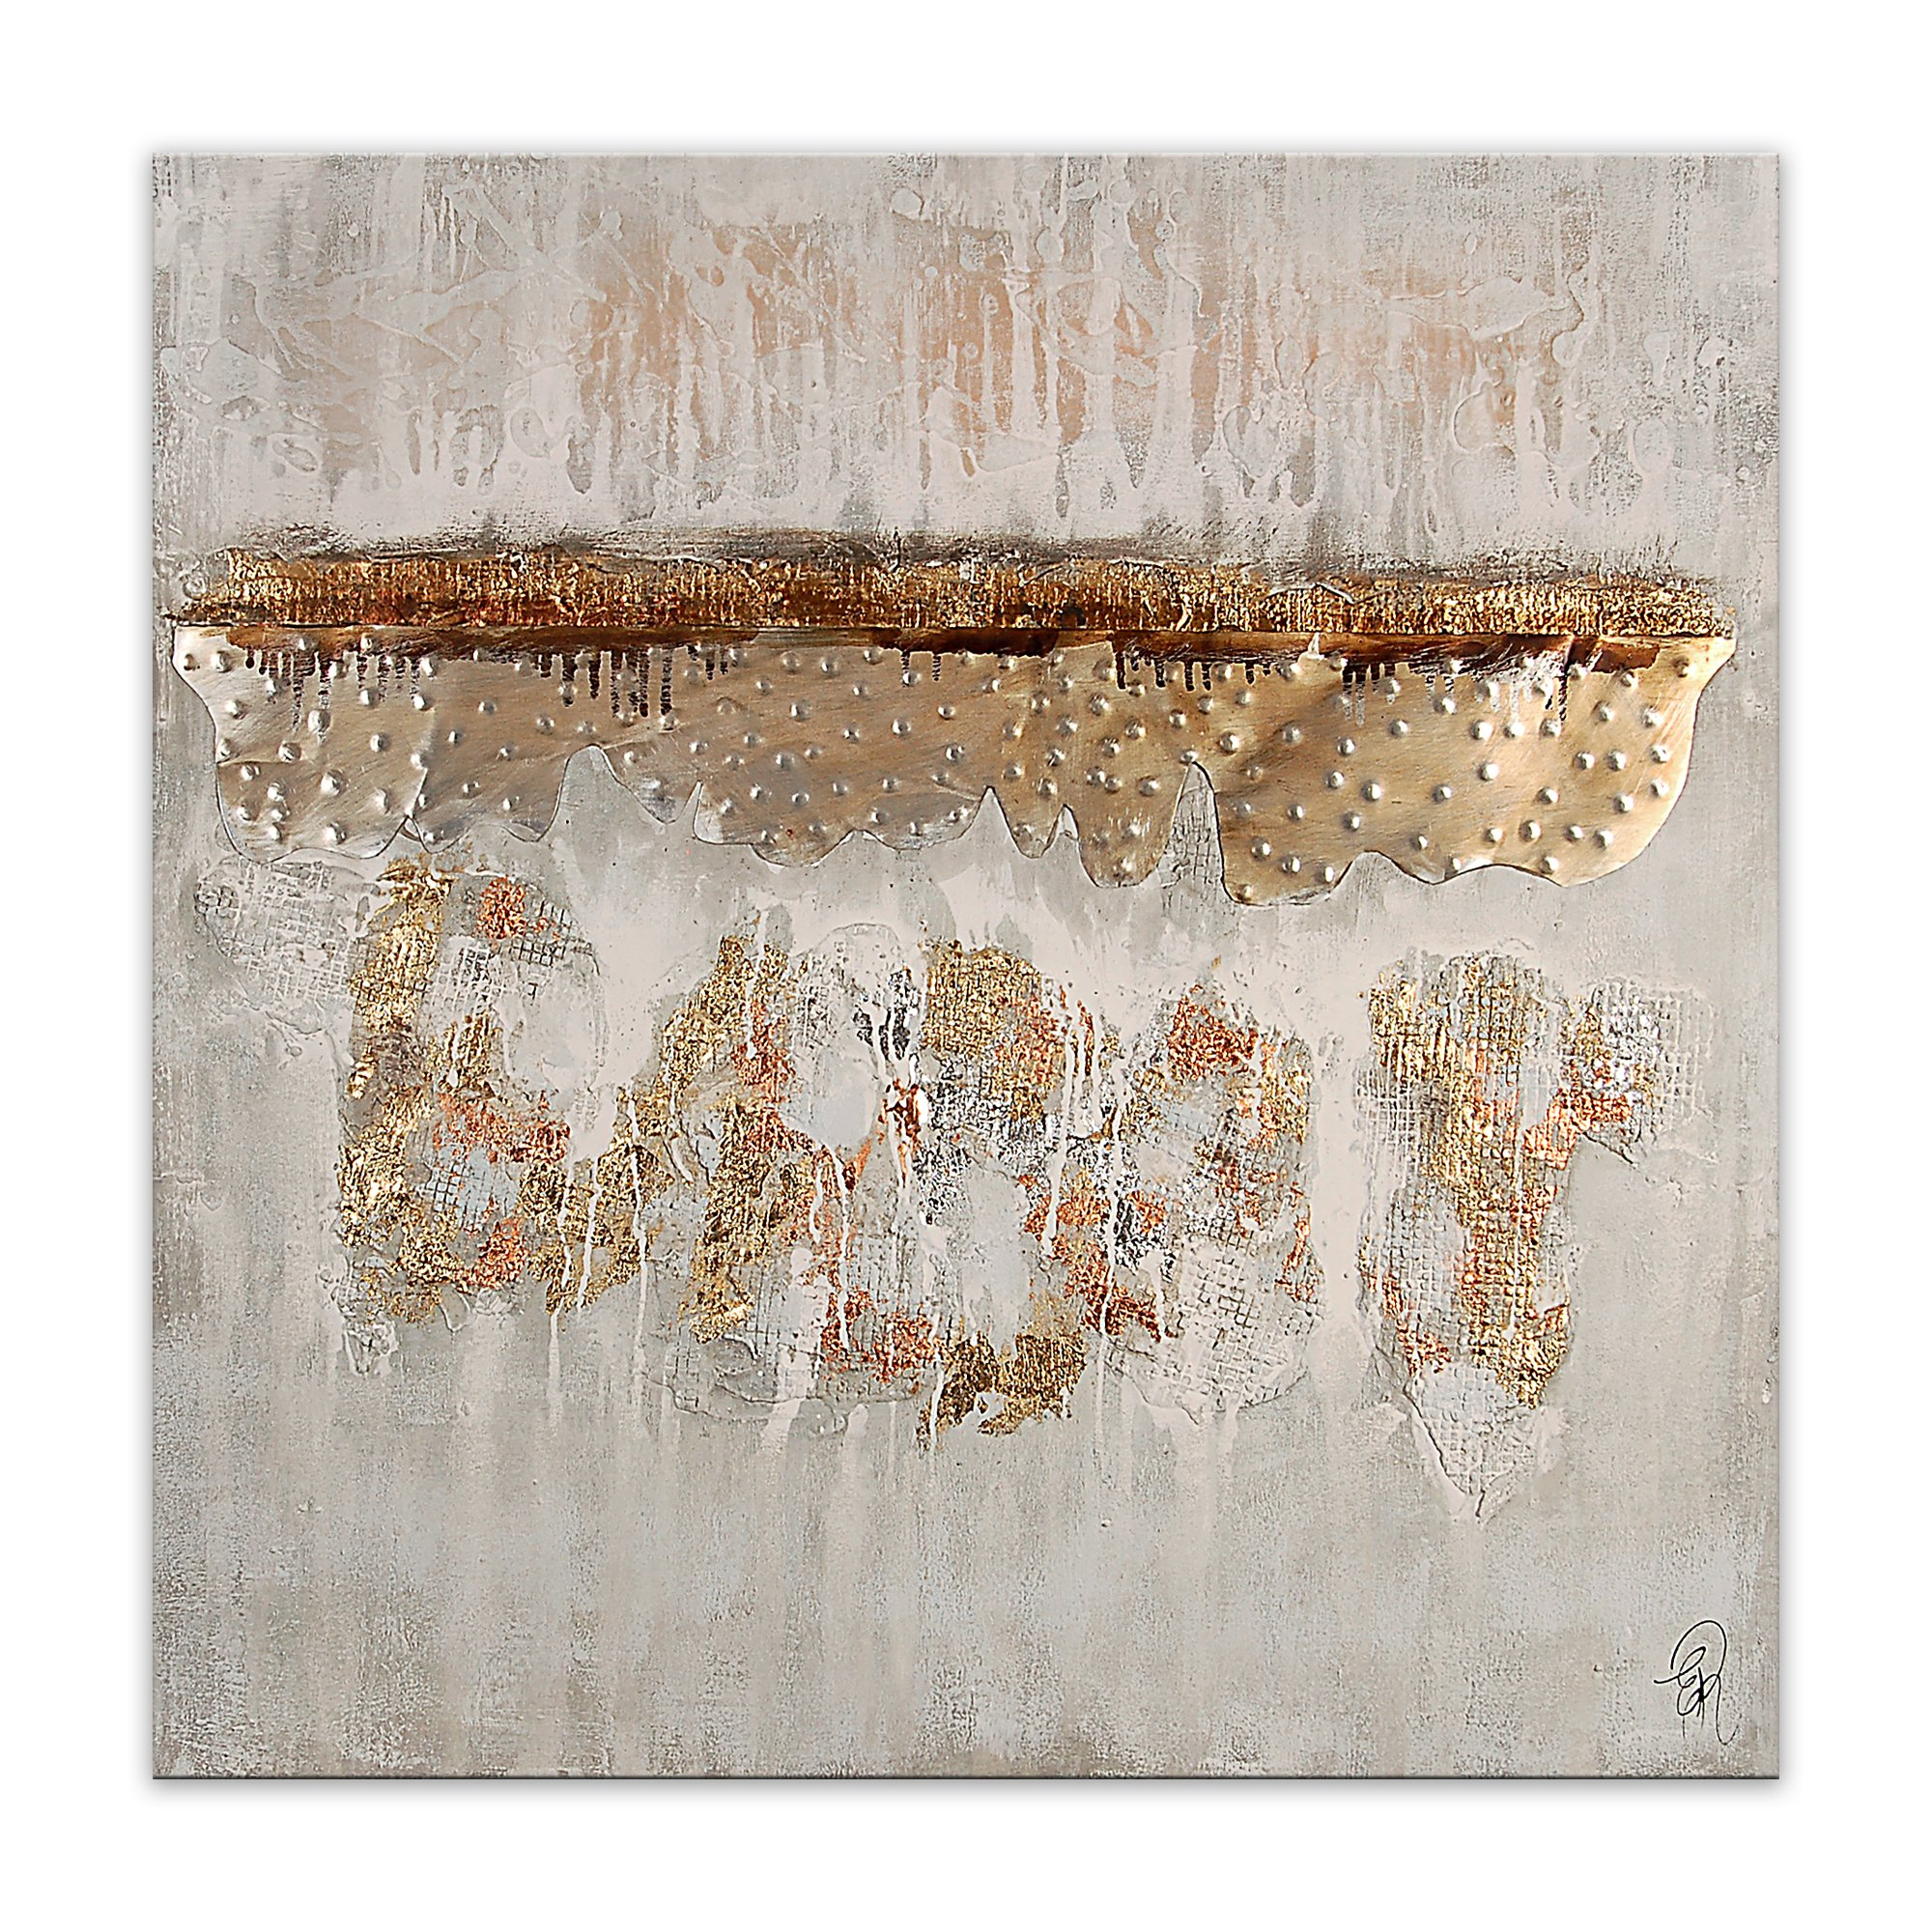 World Art TW60094 Aesthetic Wooden Frame Abstract 100x100x3.5 cm Size: 40 x 40 x 2 Inch